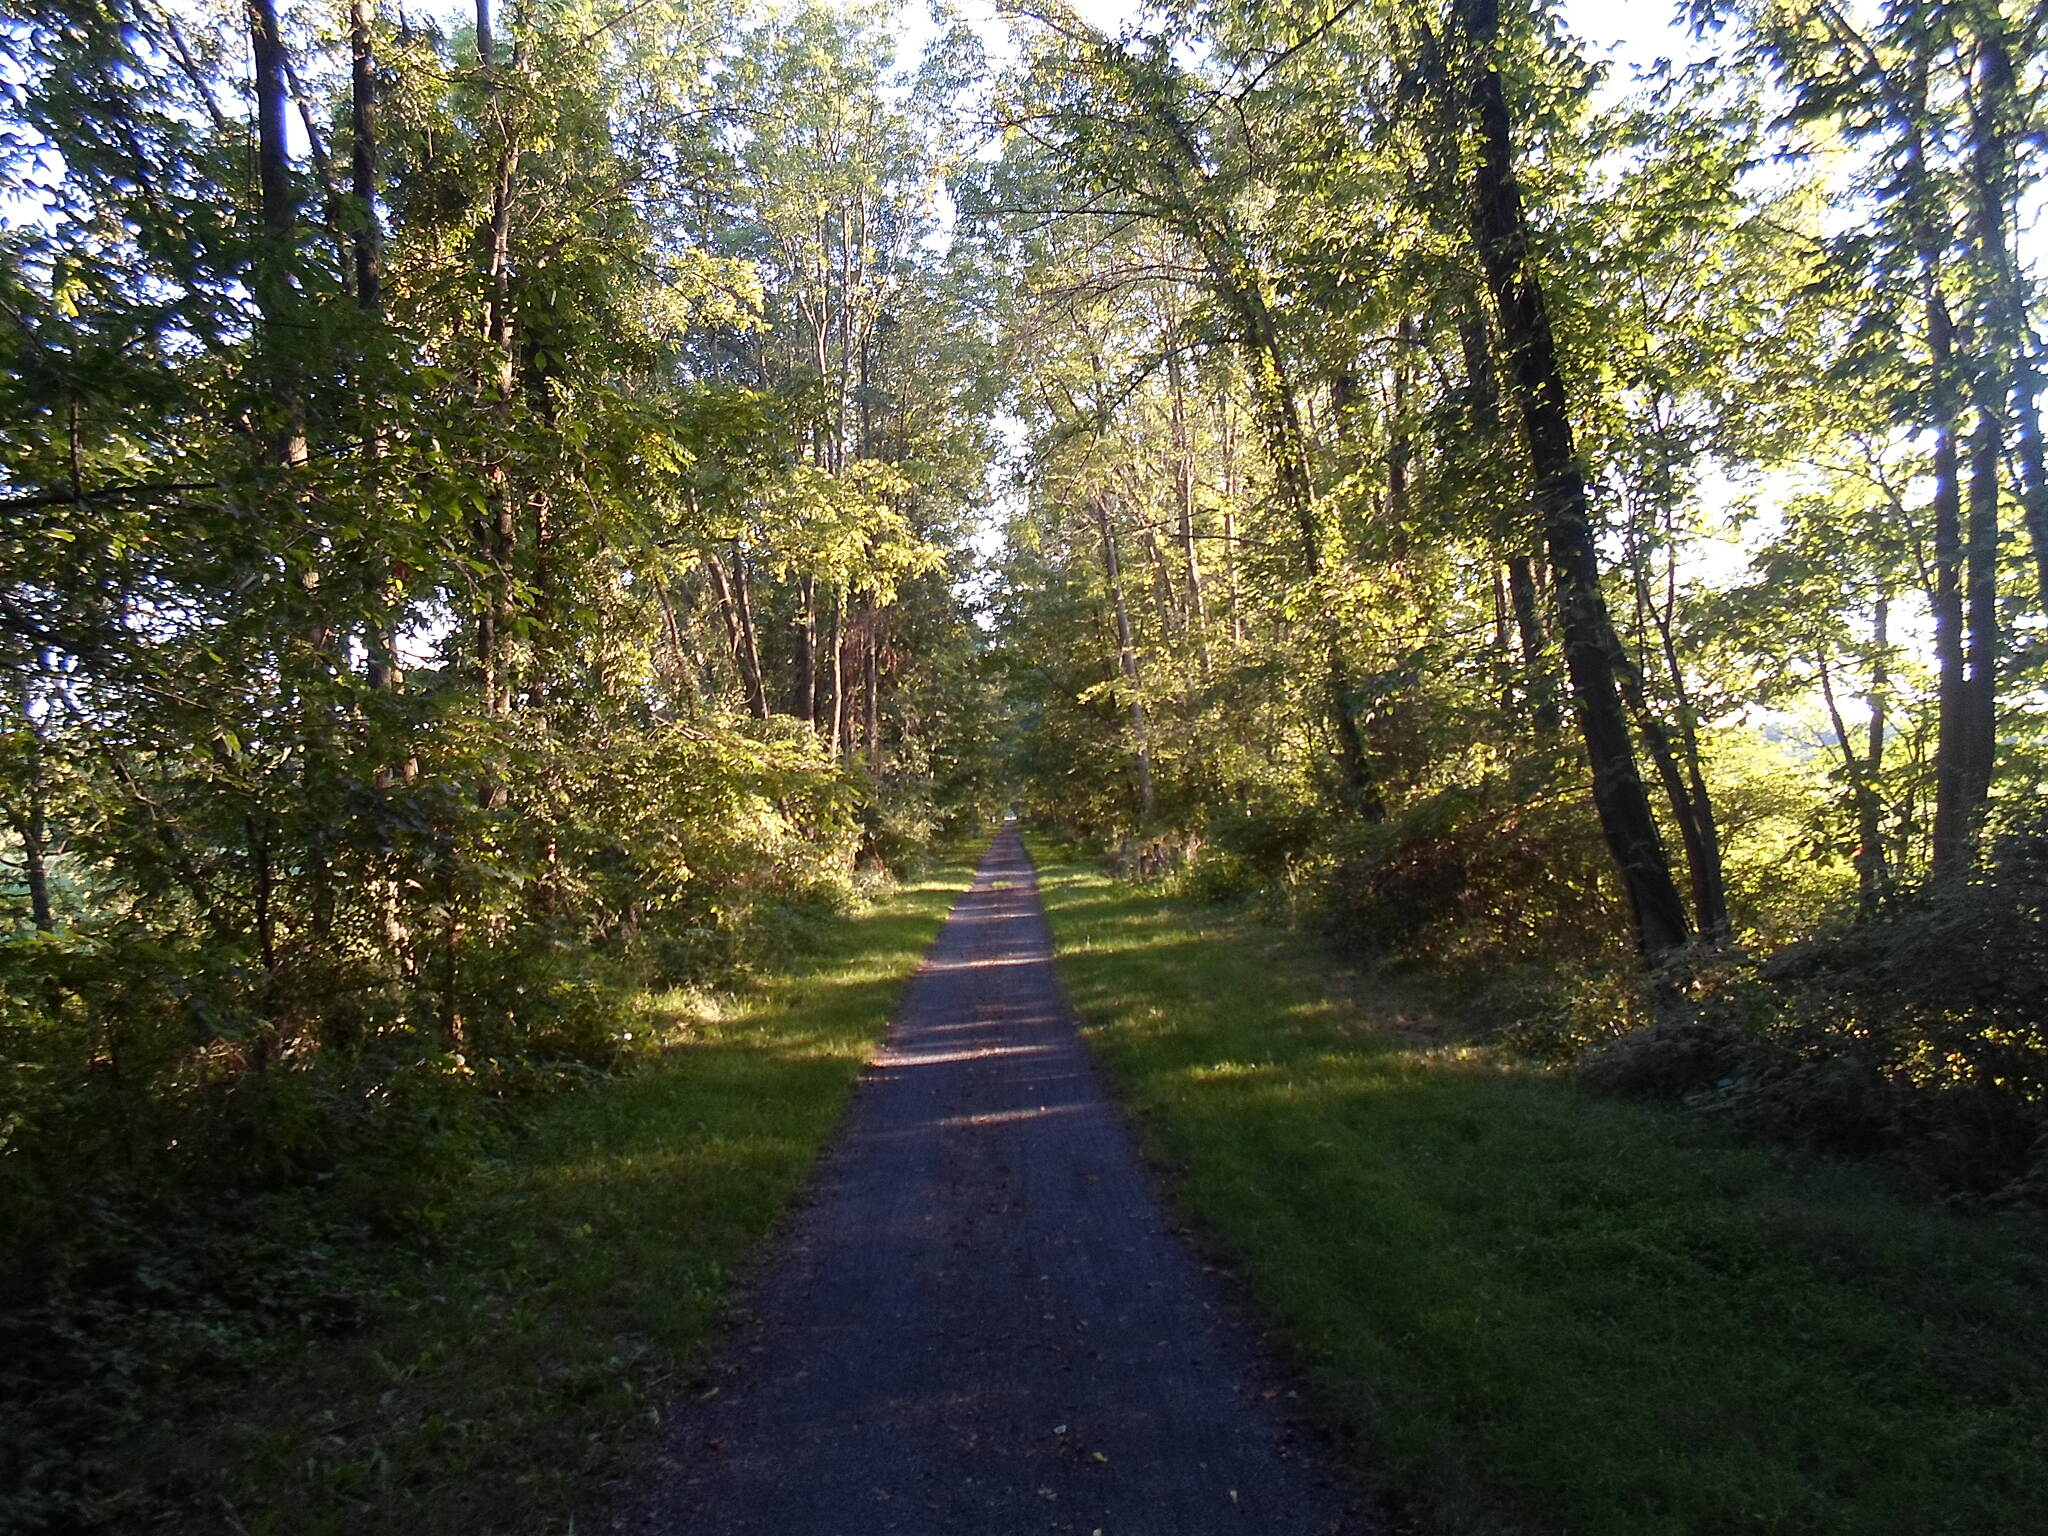 Lebanon Valley Rail-Trail Lebanon Valley Rail Trail The cool shade on the wooded sections of the LVRT provides a welcome refuge from the sun in the warm months of the year. Taken Aug. 2015.